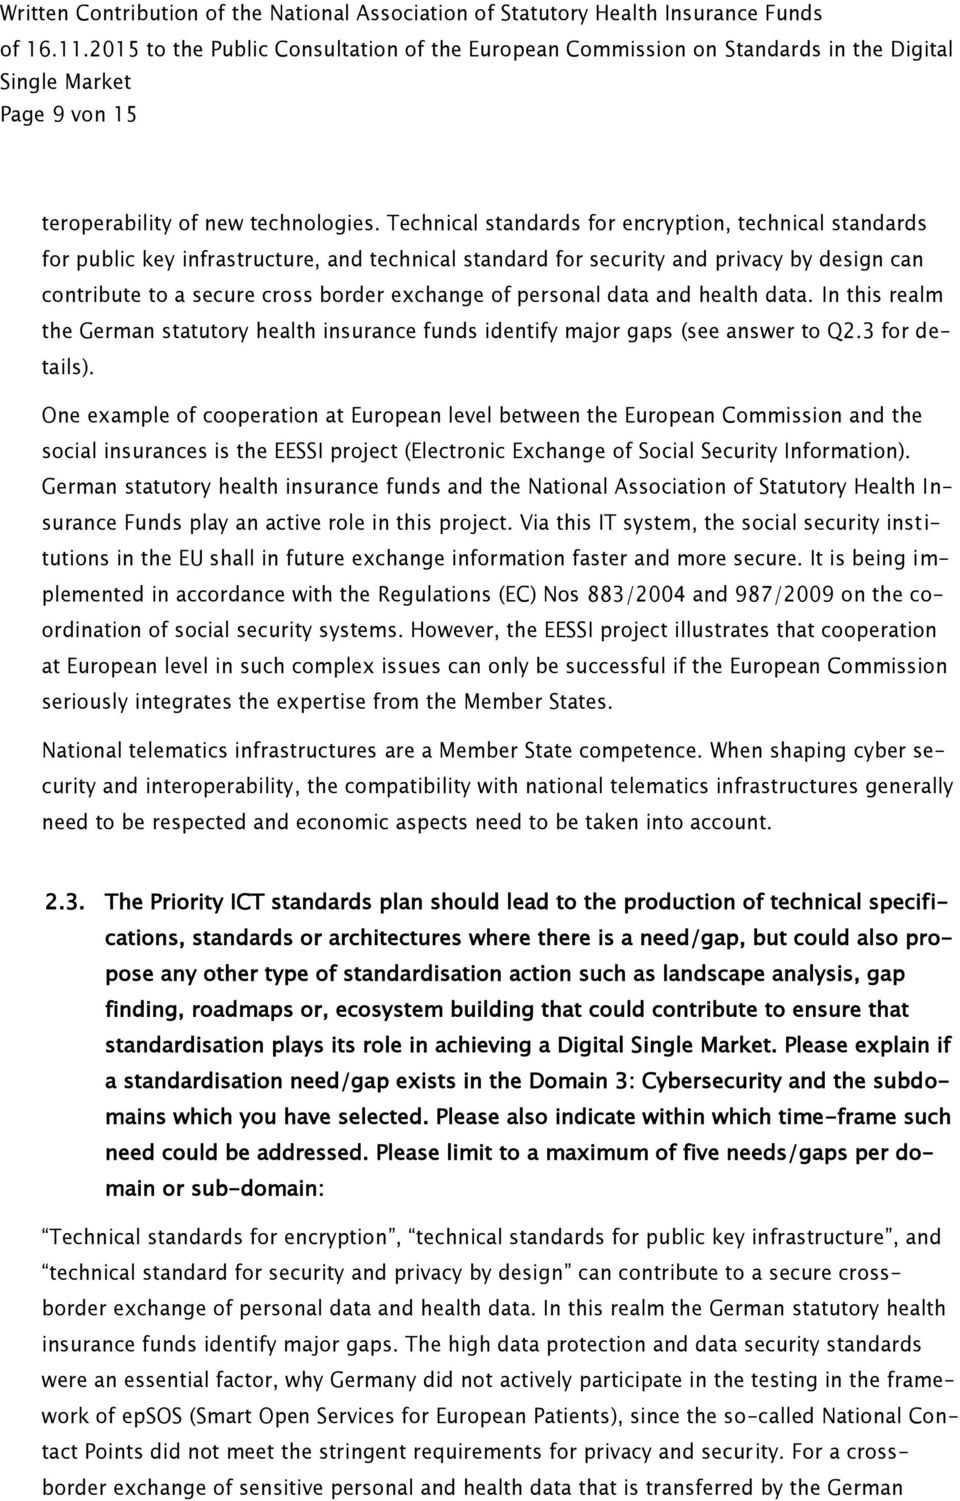 personal data and health data. In this realm the German statutory health insurance funds identify major gaps (see answer to Q2.3 for details).